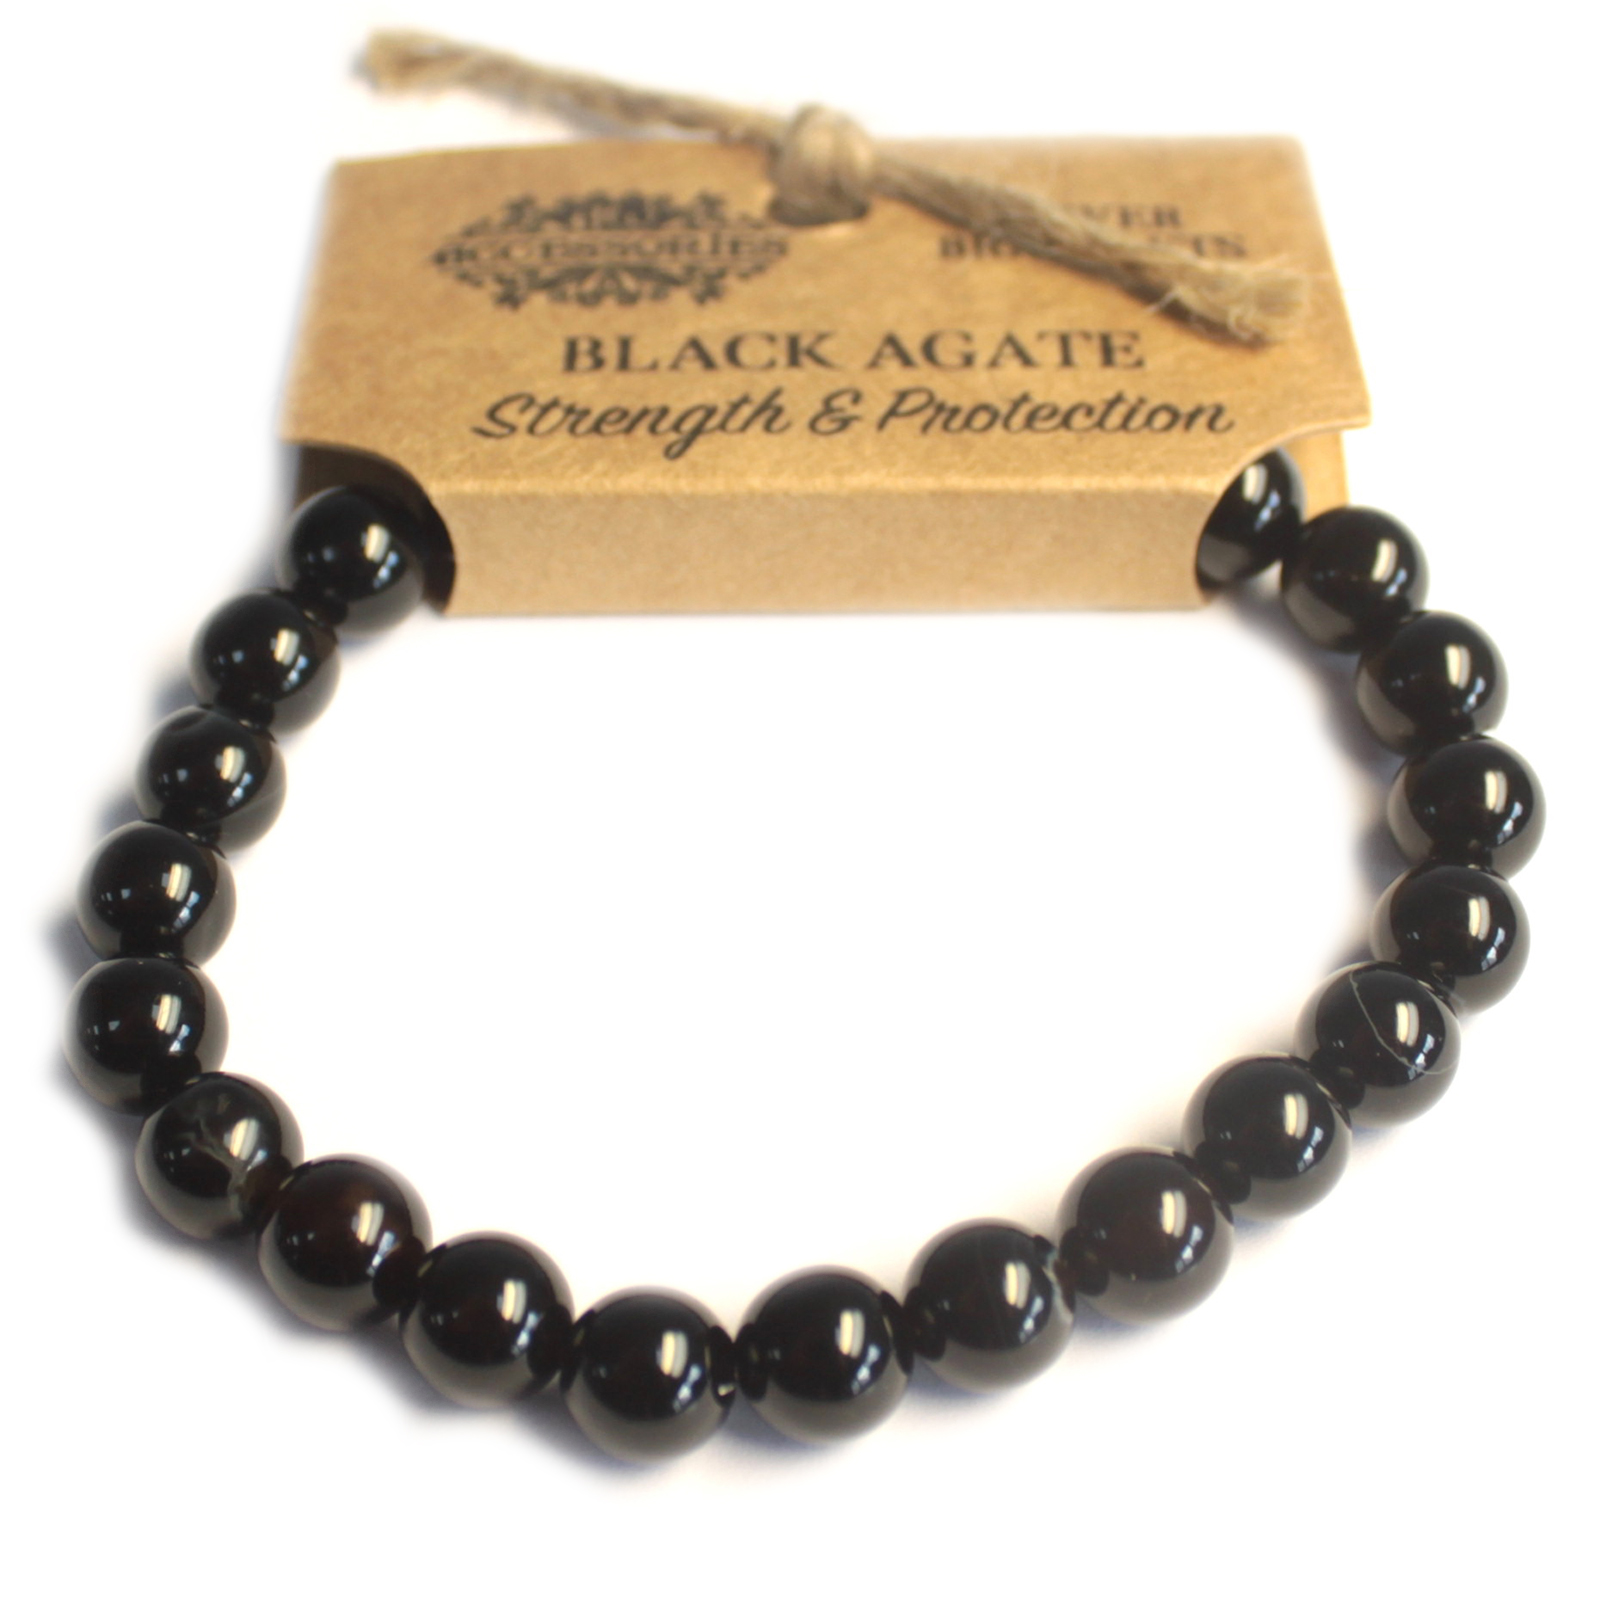 Power Bracelet - Black Agate